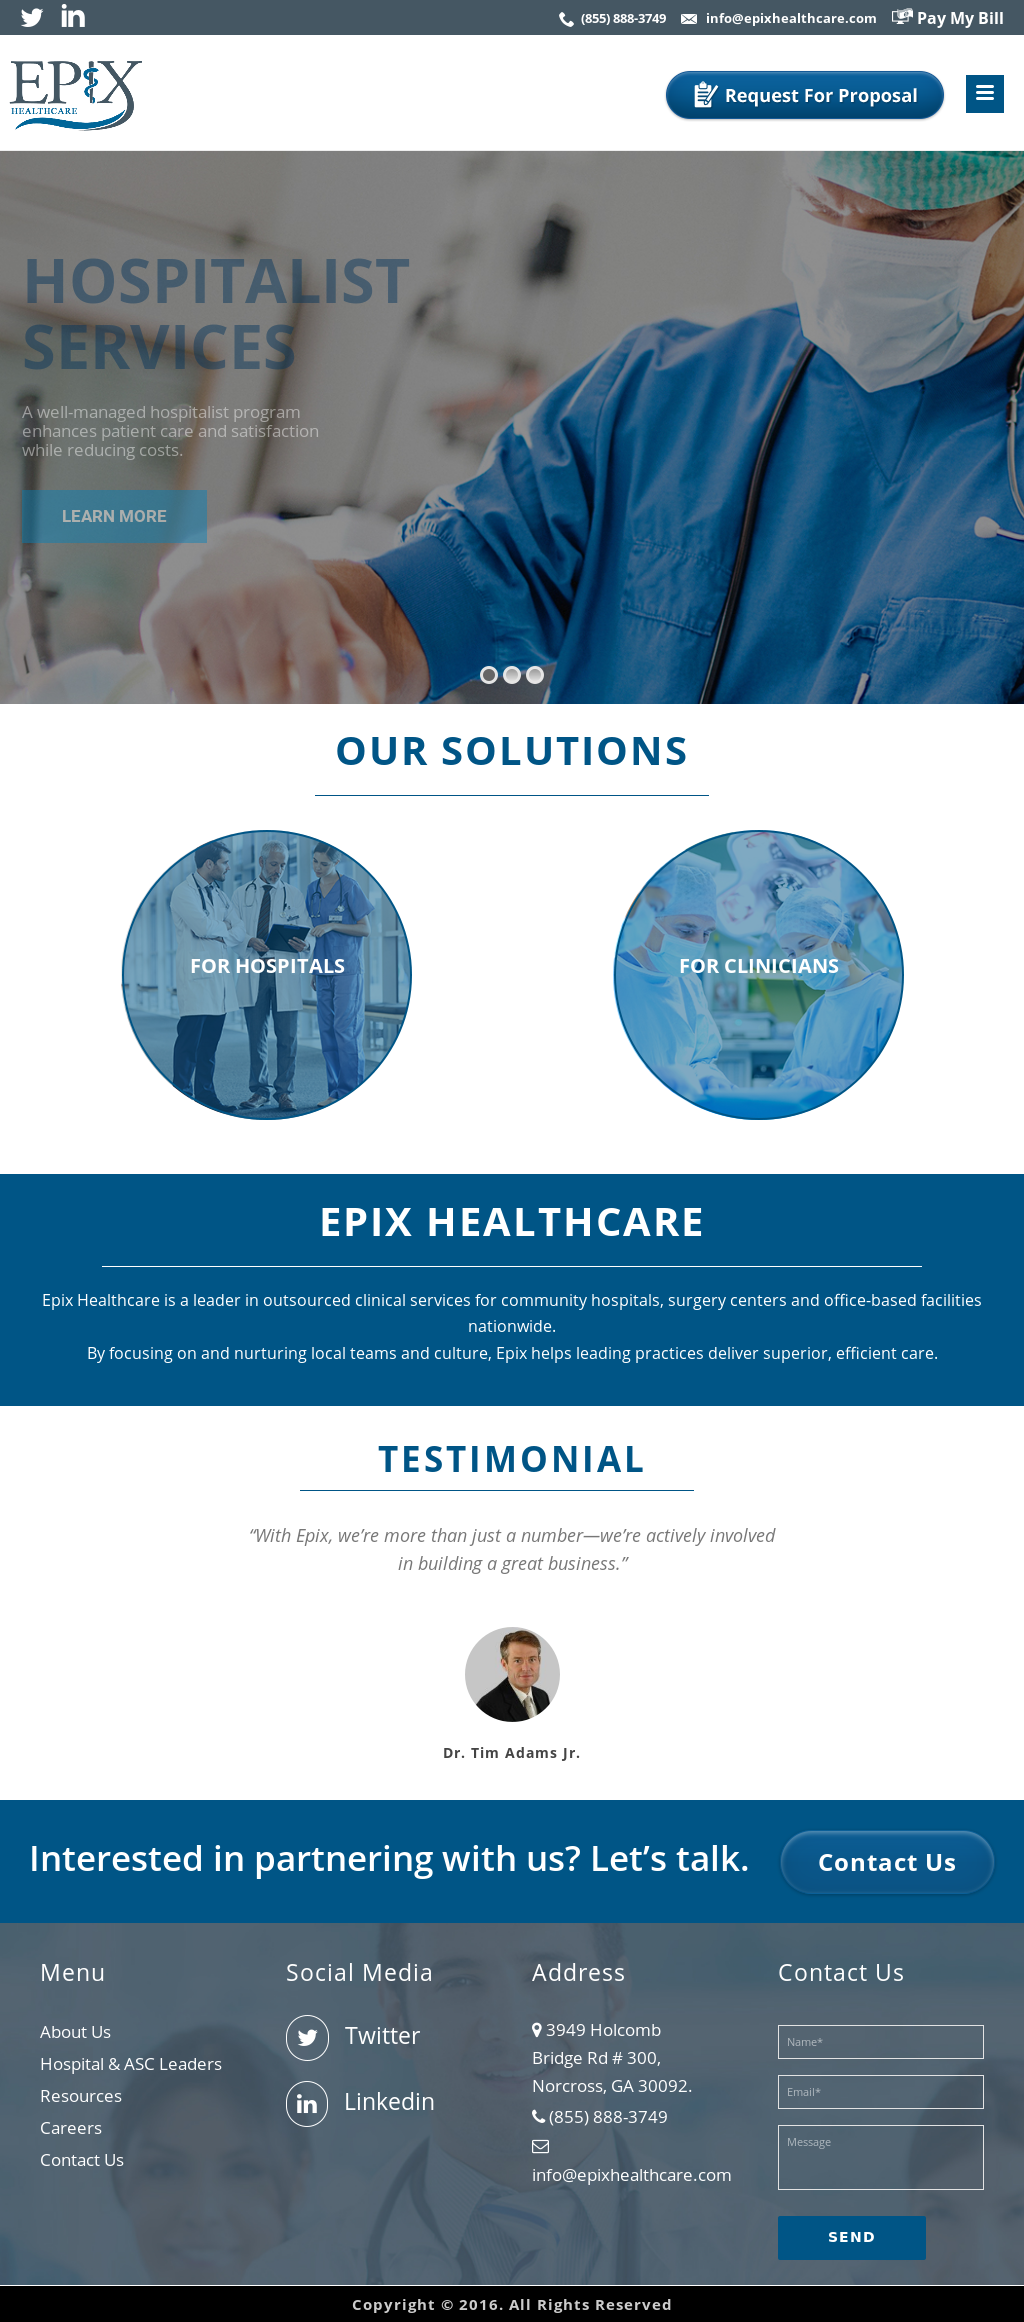 Owler Reports - Epix Anesthesia: Ashlar Capital backs Epix